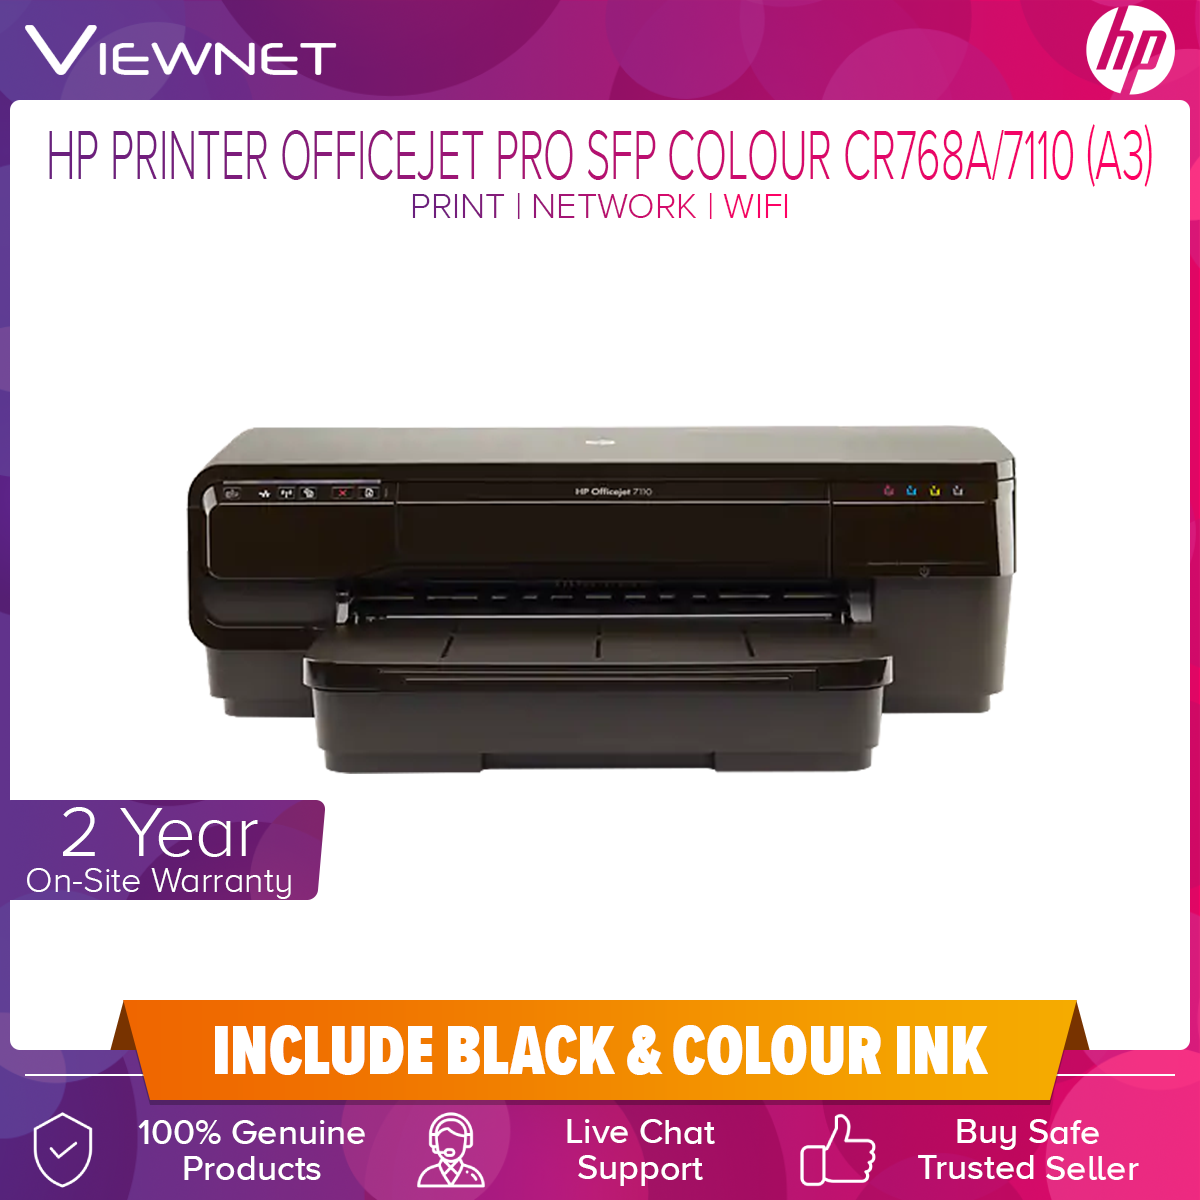 HP OfficeJet Pro SFP Colour CR768A/7110 (Print/Network/WiFi) (A3) 2 Years Onsite Warranty with 1-to-1 Unit exchange **NEED TO ONLINE REGISTER**